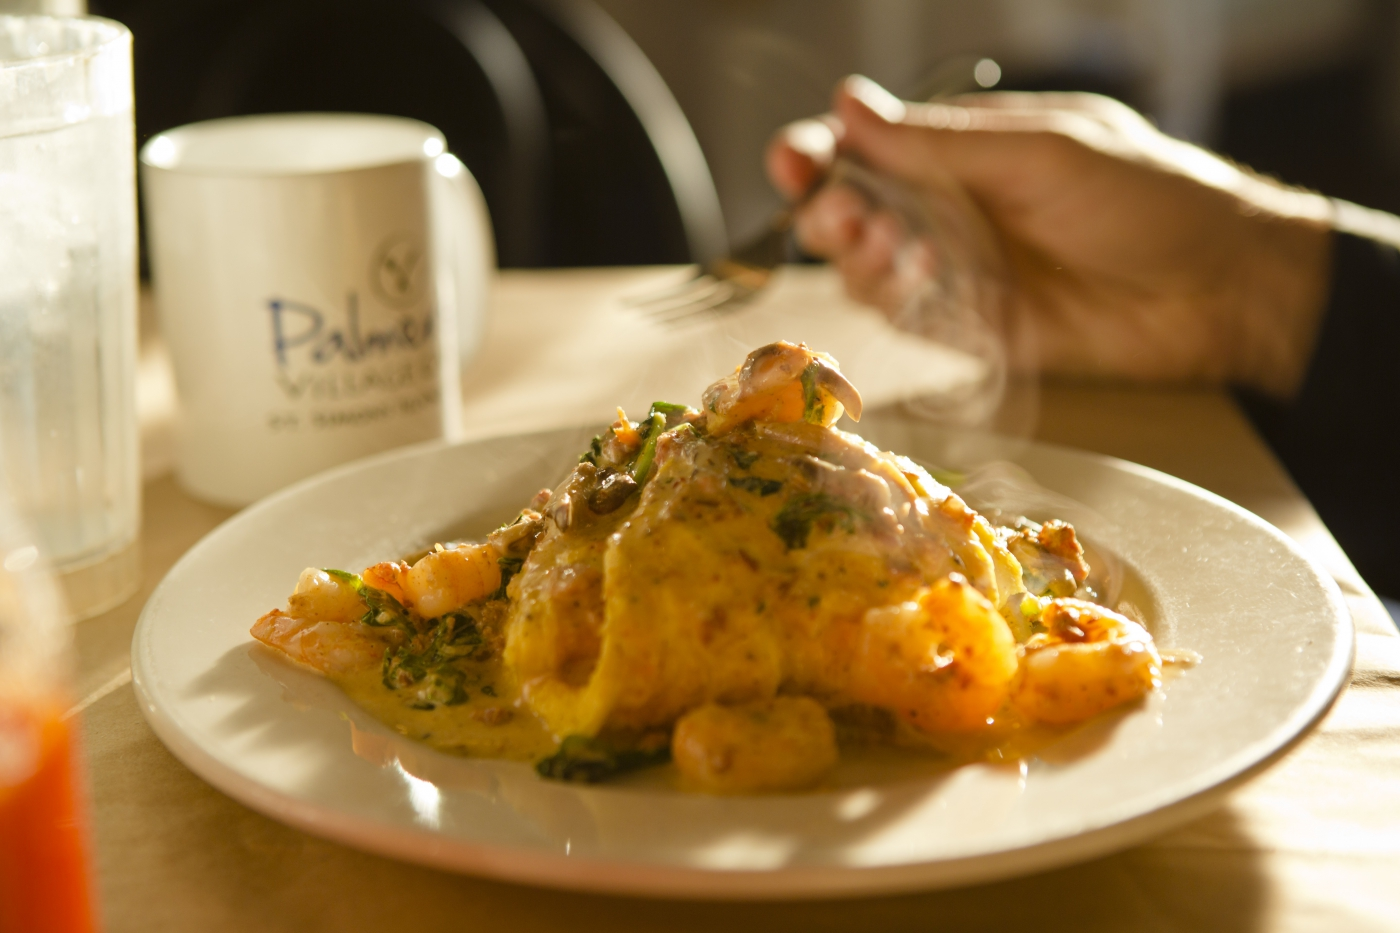 Enjoy your favorite southern dishes at Palmers Village Café on St. Simons Island.